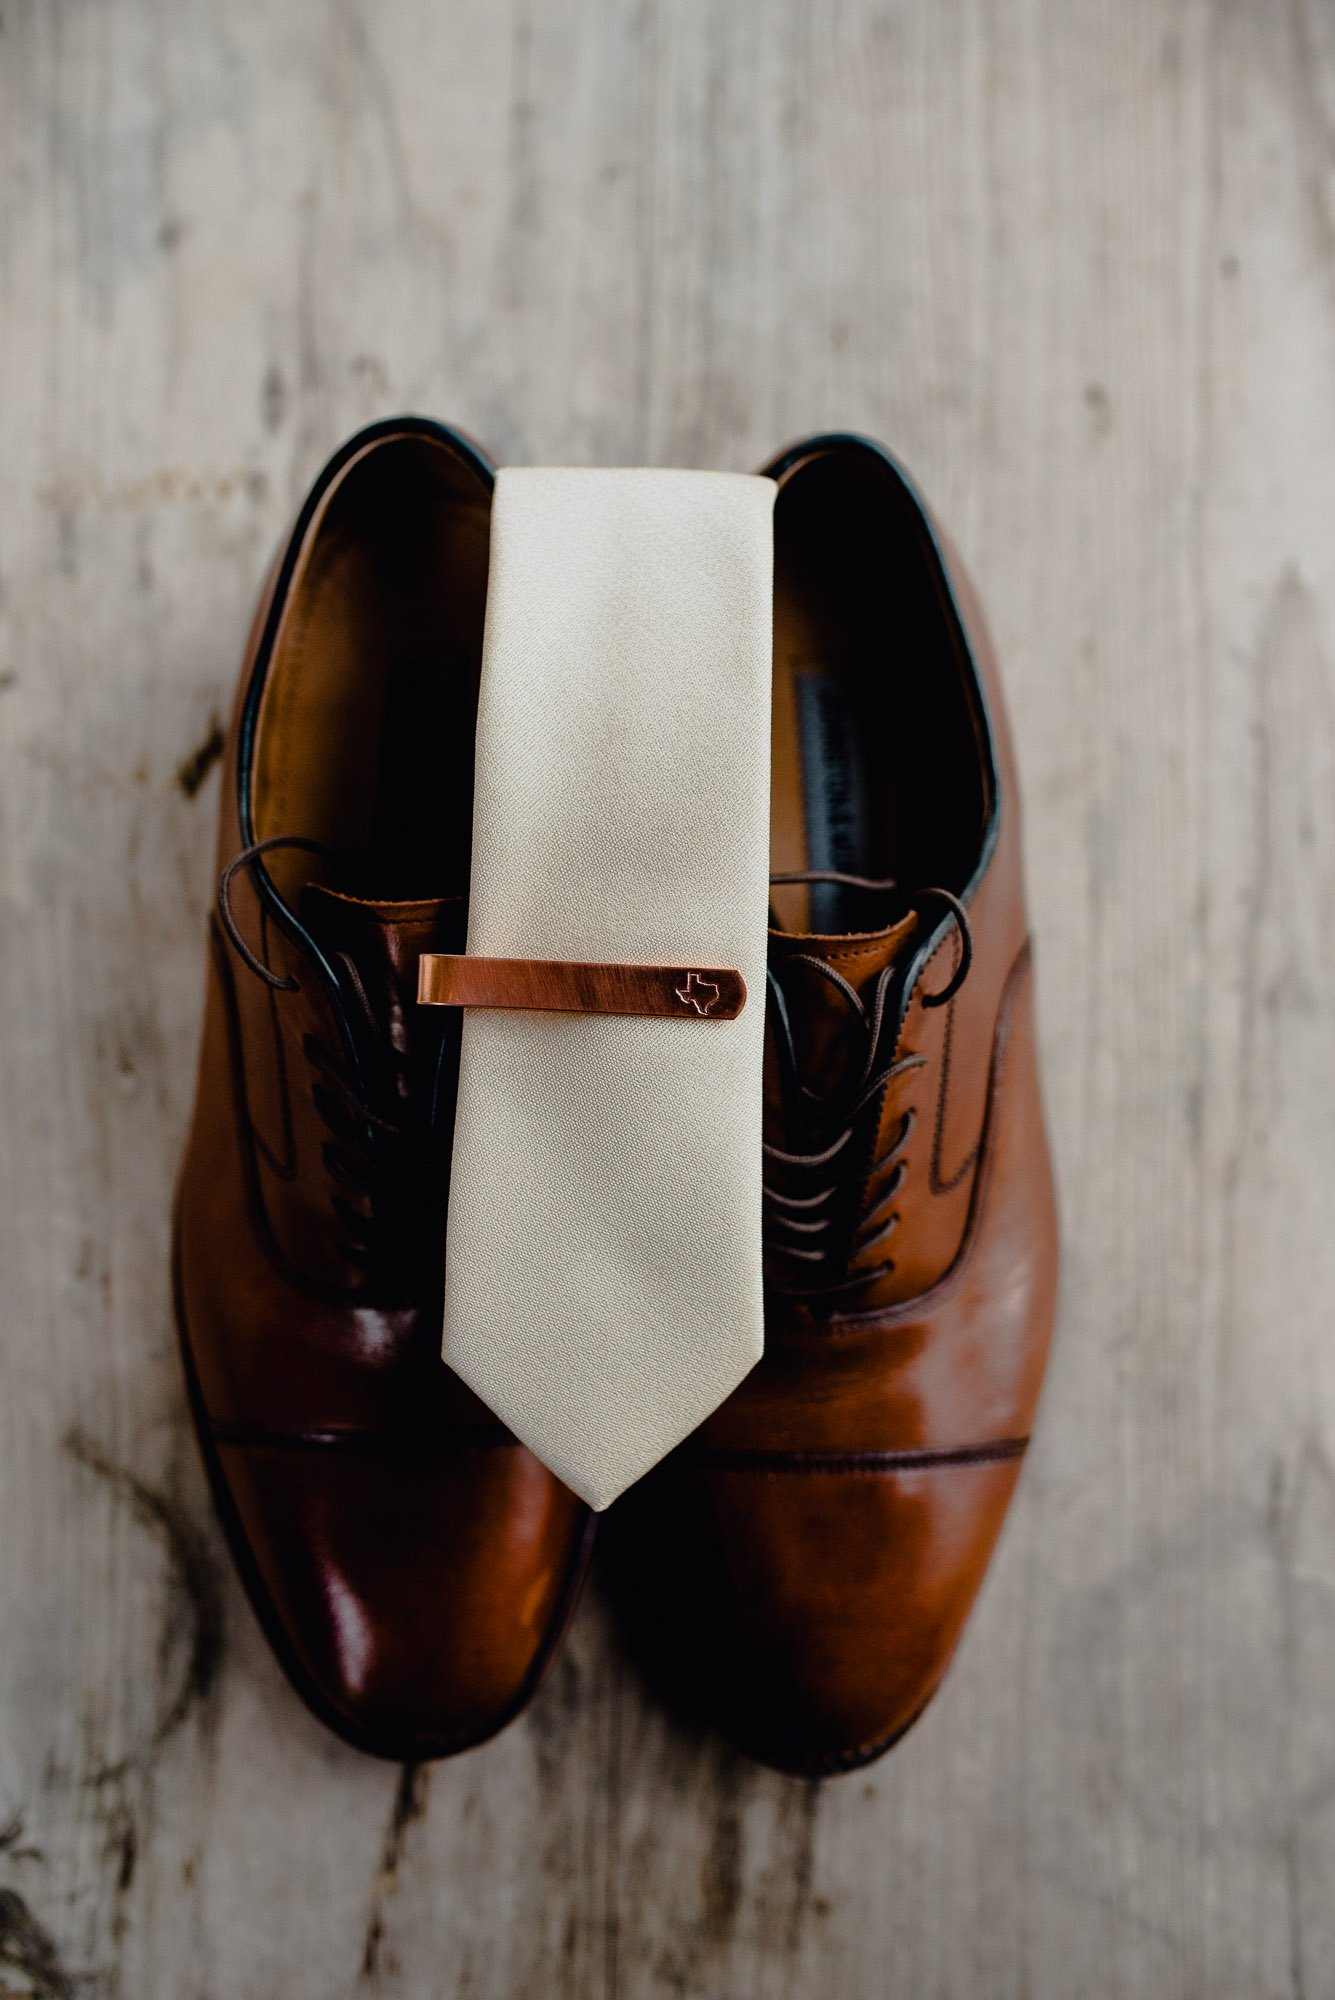 groom's details, tie and texas tie clip on a brown pair of shoes at a texas wedding